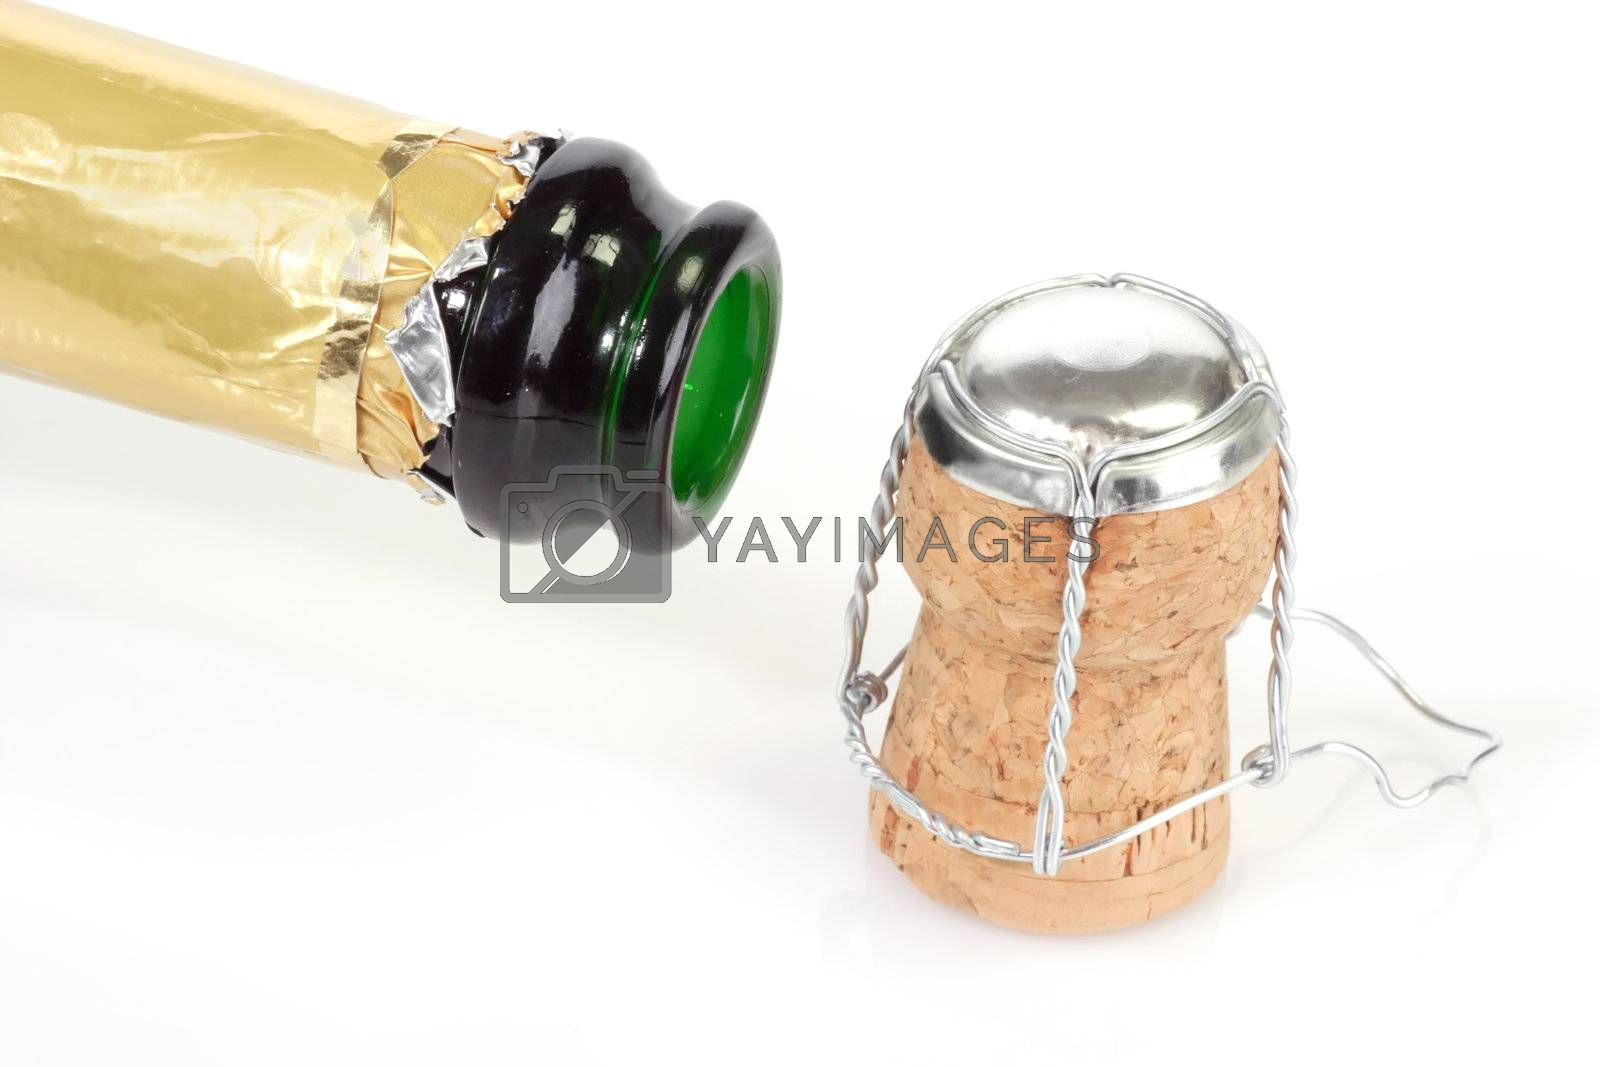 Open champagne bottle with cork on white background